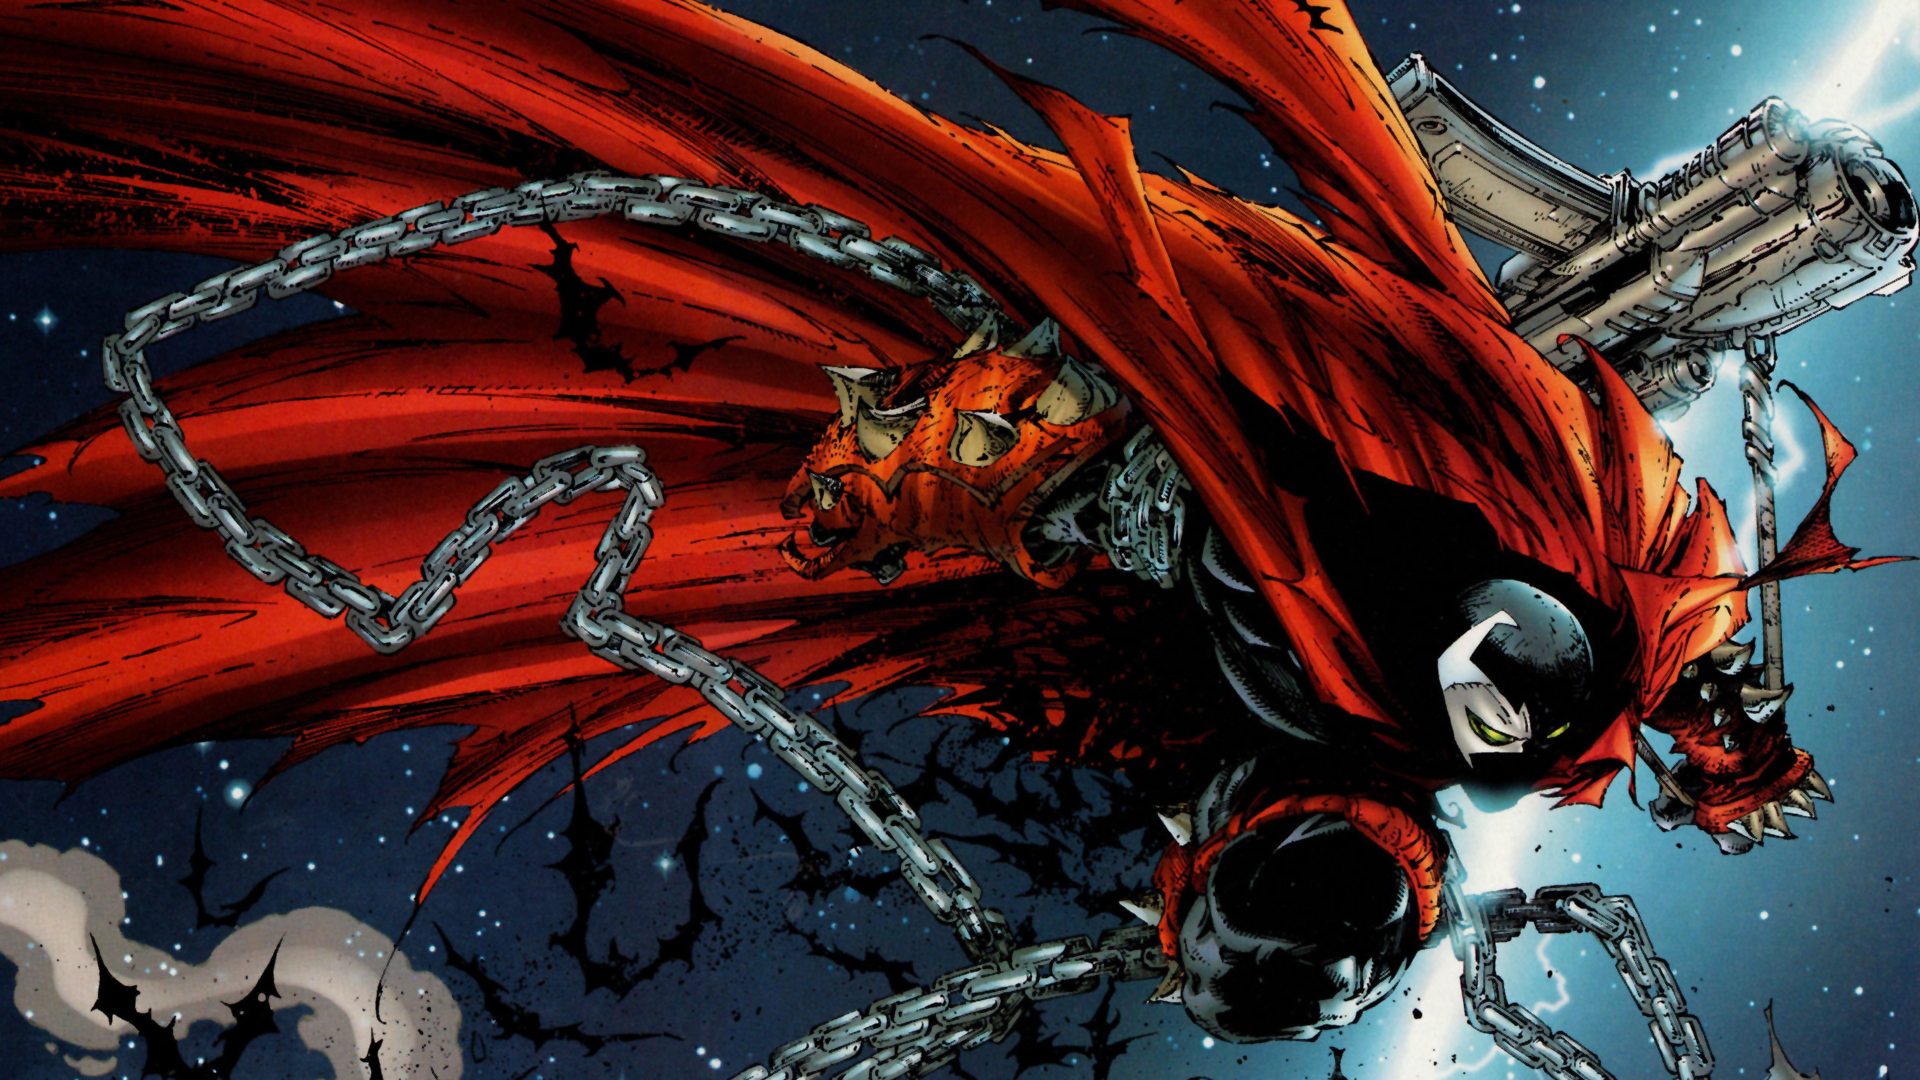 Spawn wallpaper | 1920x1080 | 39663 | WallpaperUP